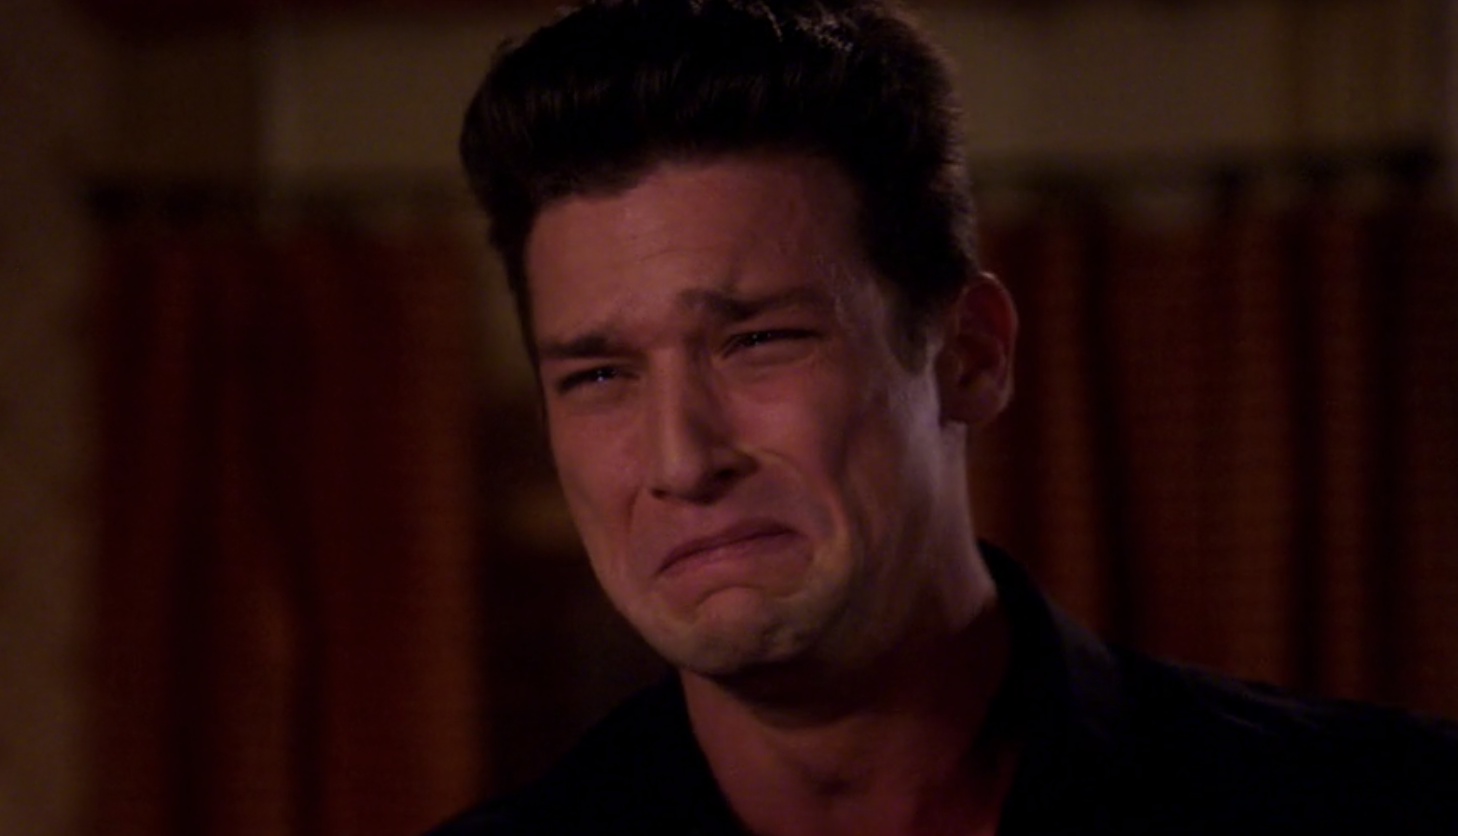 ricky ugly crying face